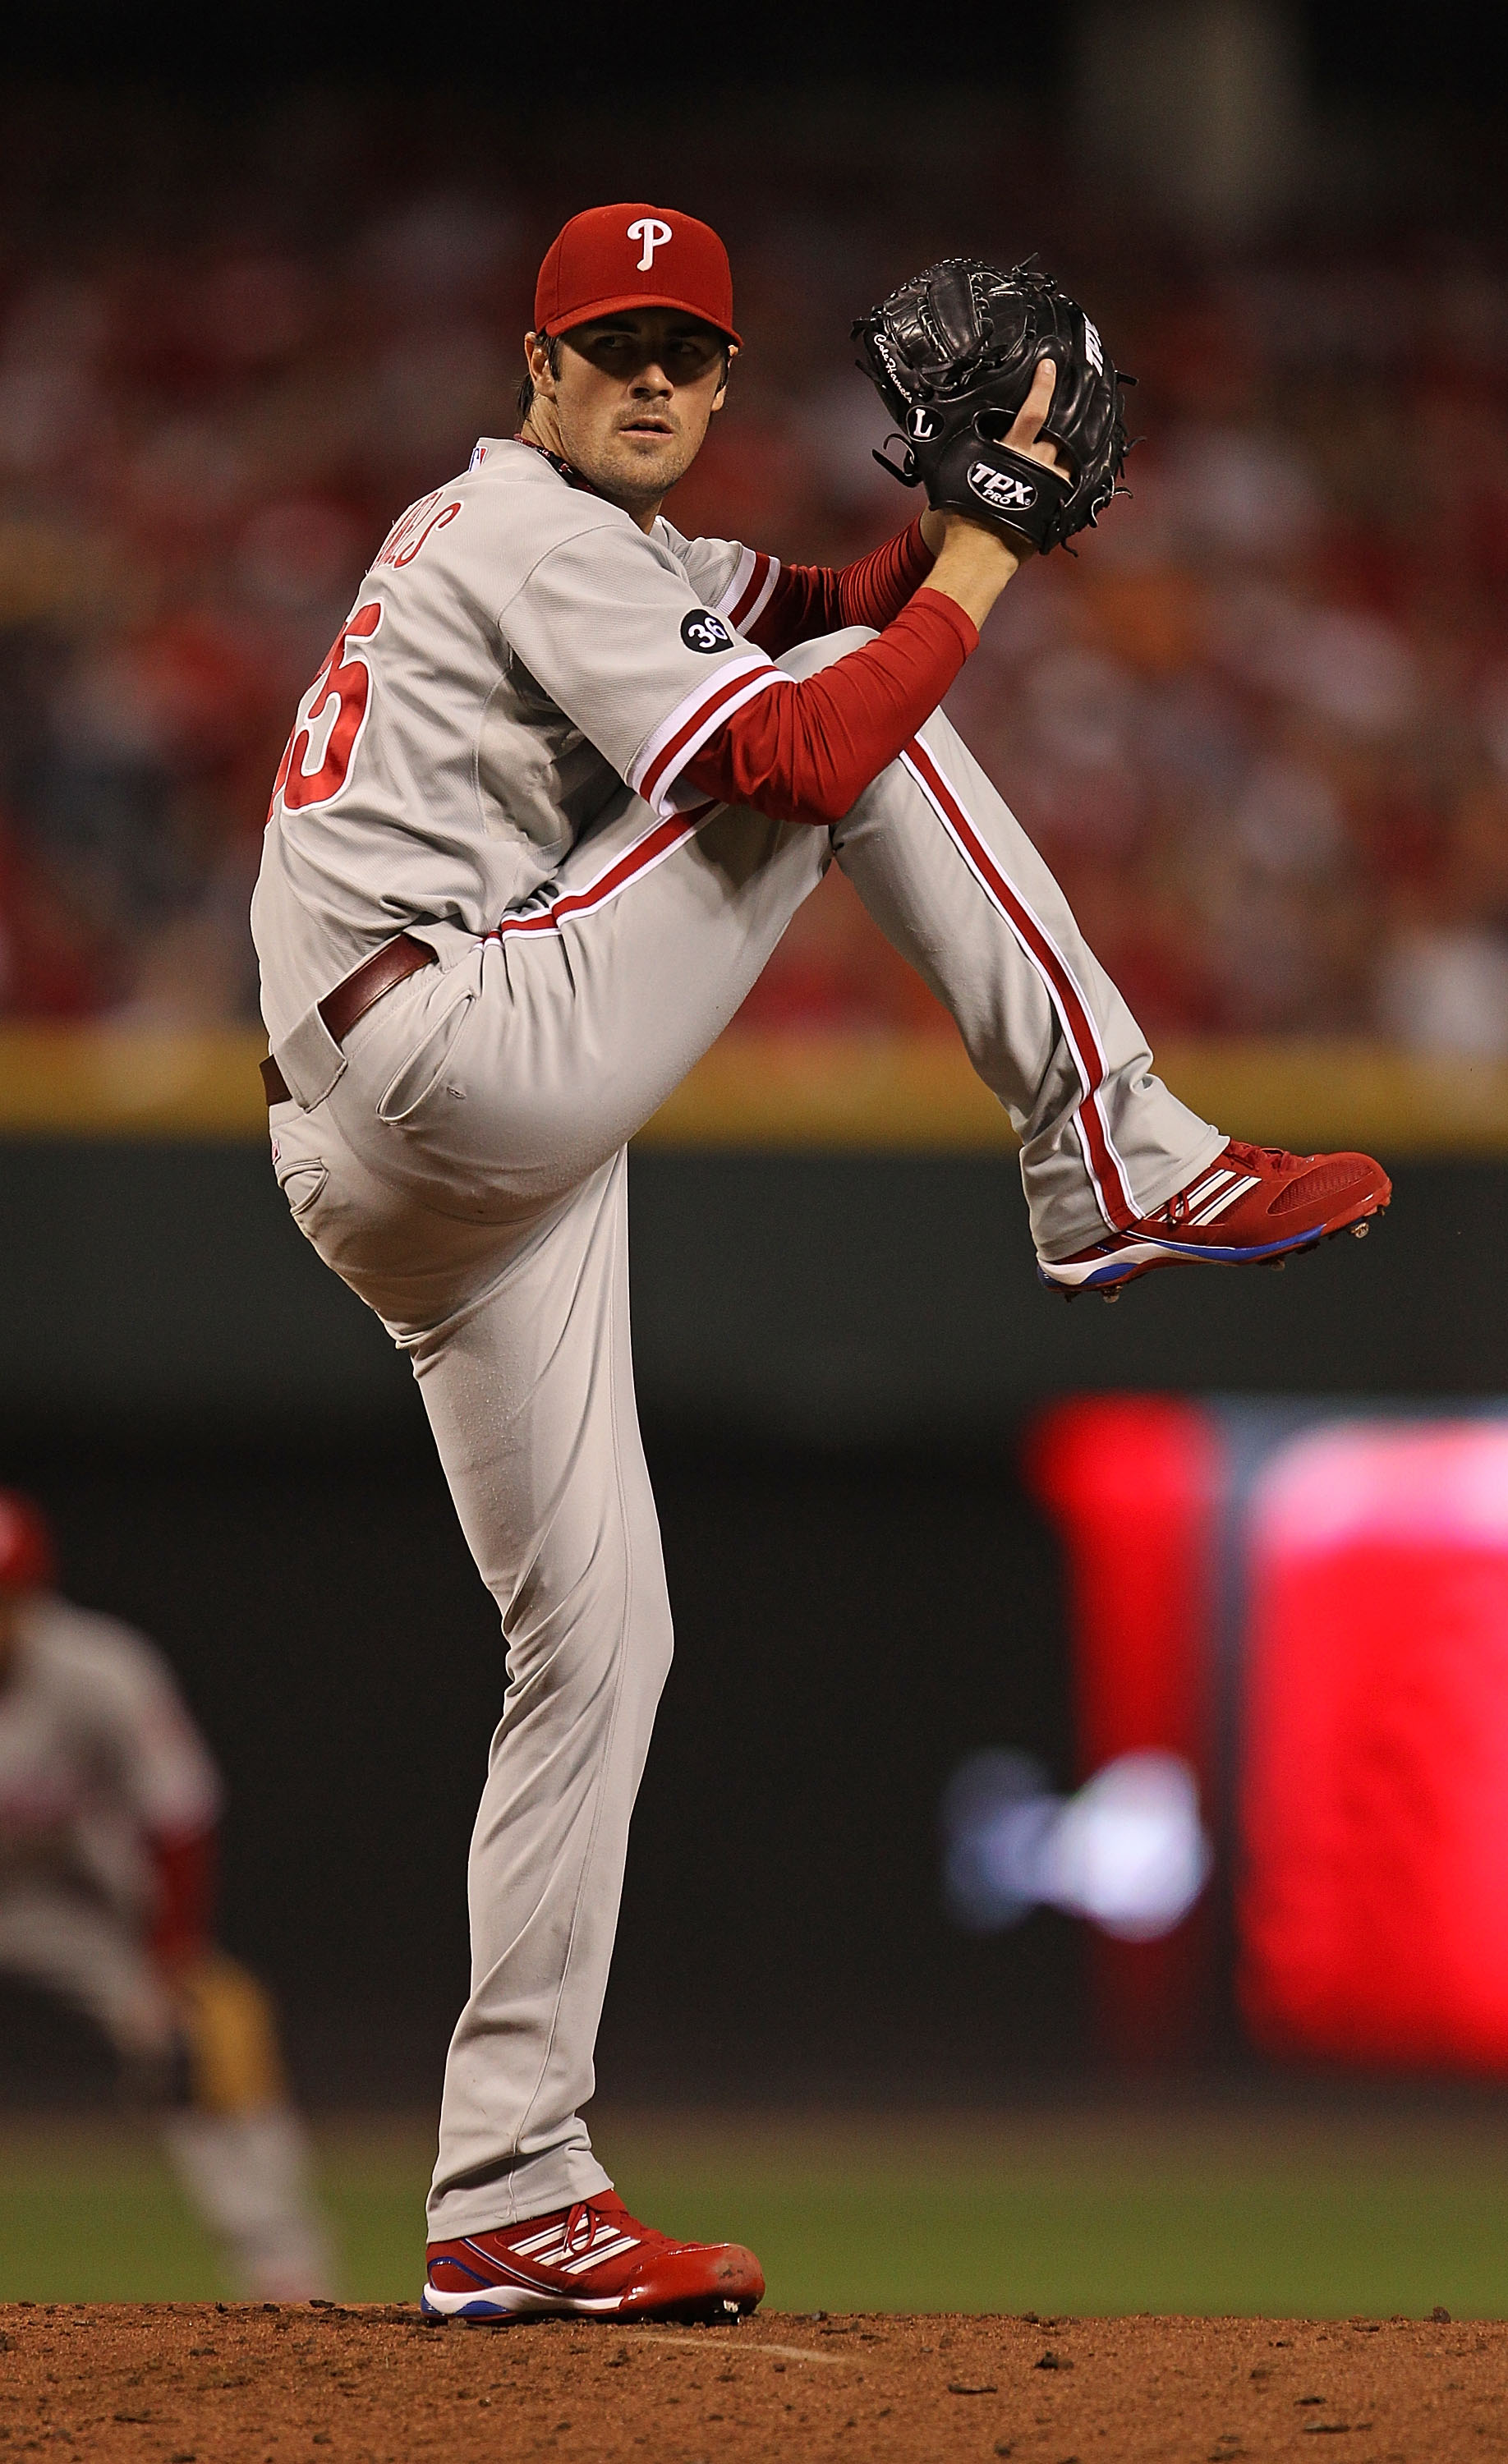 CINCINNATI - OCTOBER 10: Cole Hamels #35 of the Philadelphia Phillies delivers the ball against the Cincinnati Reds on his way to a complete game shut-out during game 3 of the NLDS at Great American Ball Park on October 10, 2010 in Cincinnati, Ohio. The P